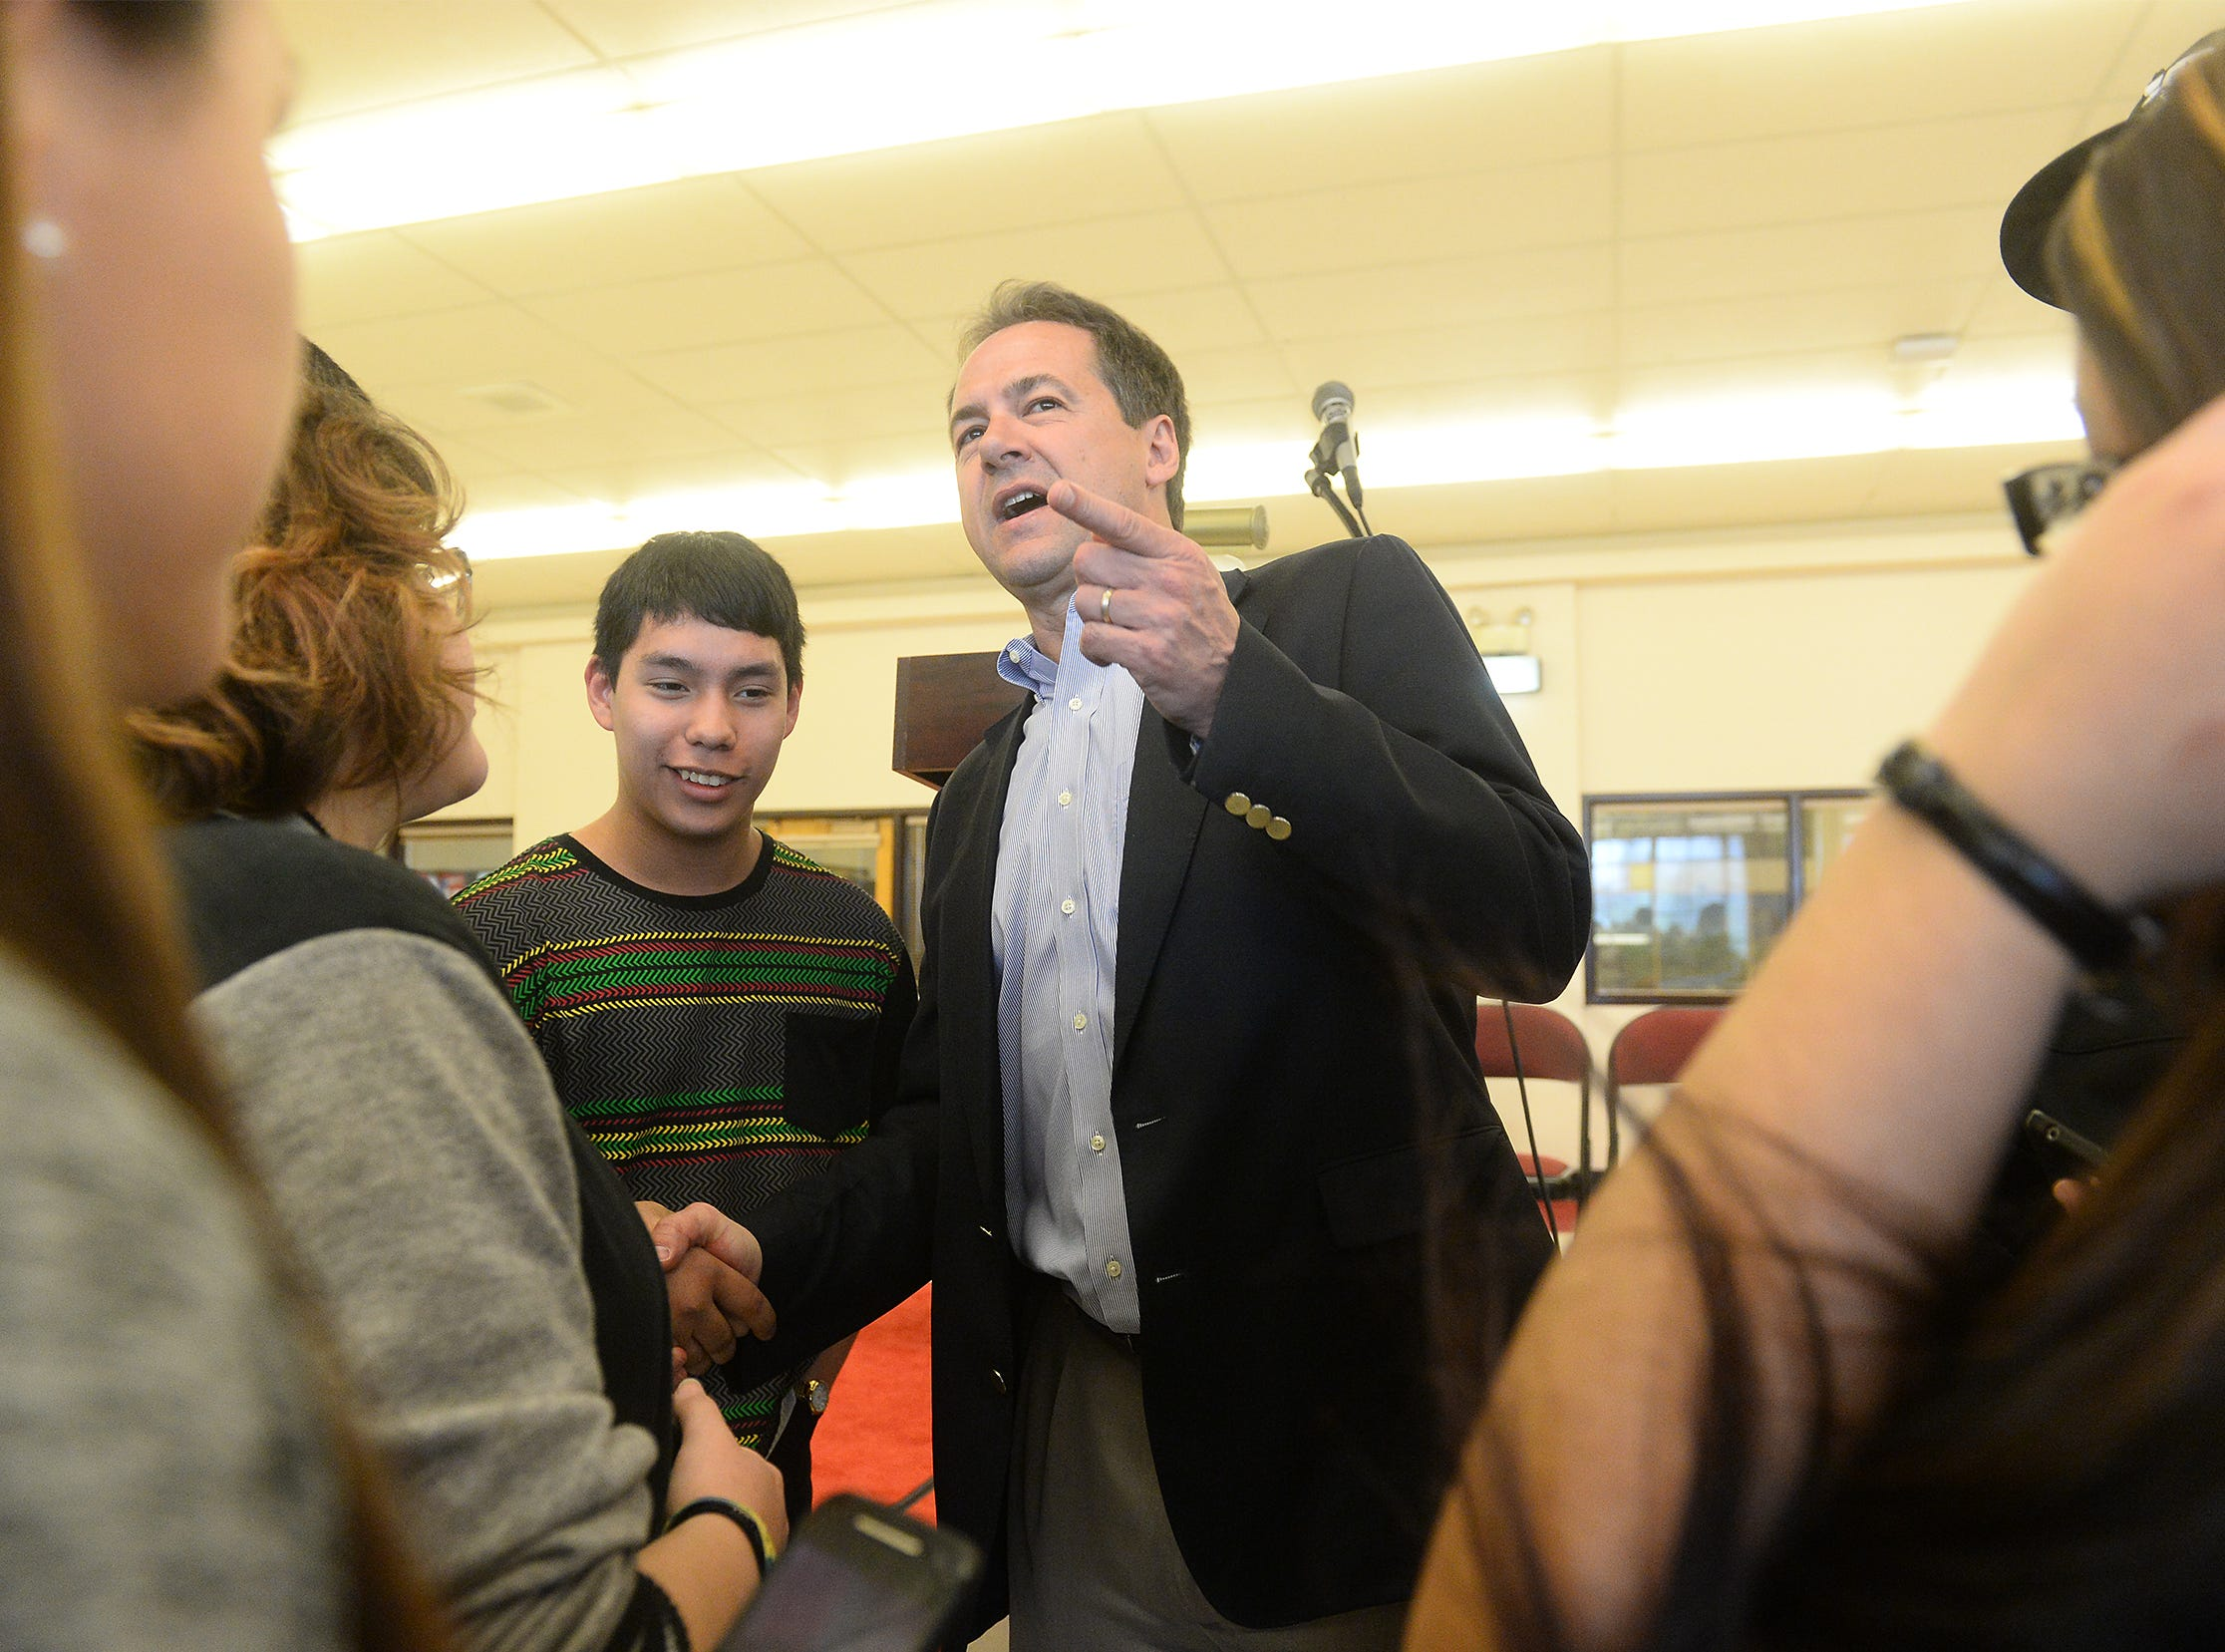 TRIBUNE PHOTO/RION SANDERS Gov. Steve Bullock meets with students at the Montana Native Youth Conference on Friday morning at Paris Gibson Education Center. Gov. Steve Bullock meets with students at the Montana Native Youth Conference on Friday morning at Paris Gibson Education Center.